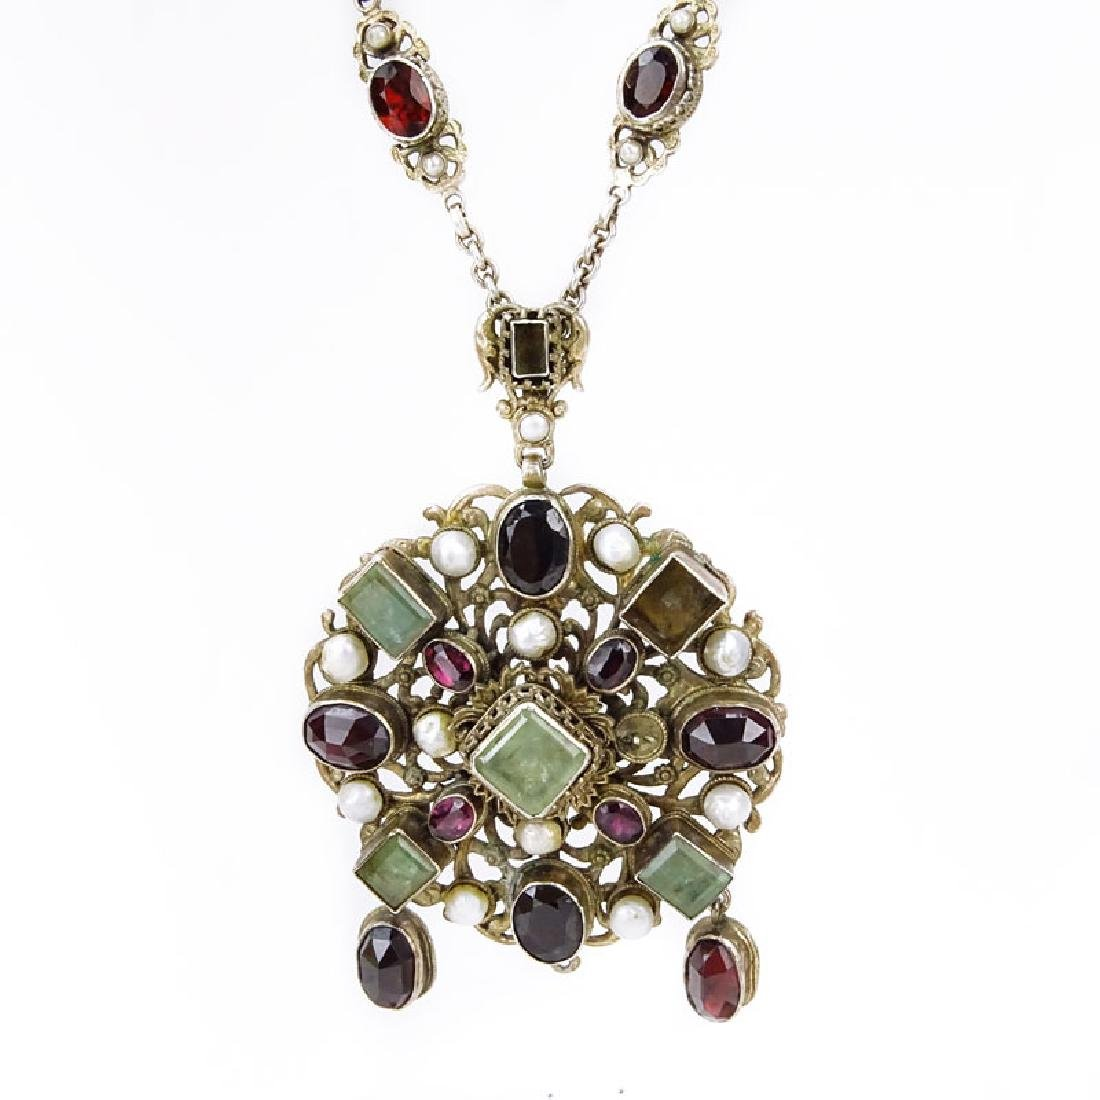 Antique Austro-Hungarian Emerald, Garnet, Pearl and Low